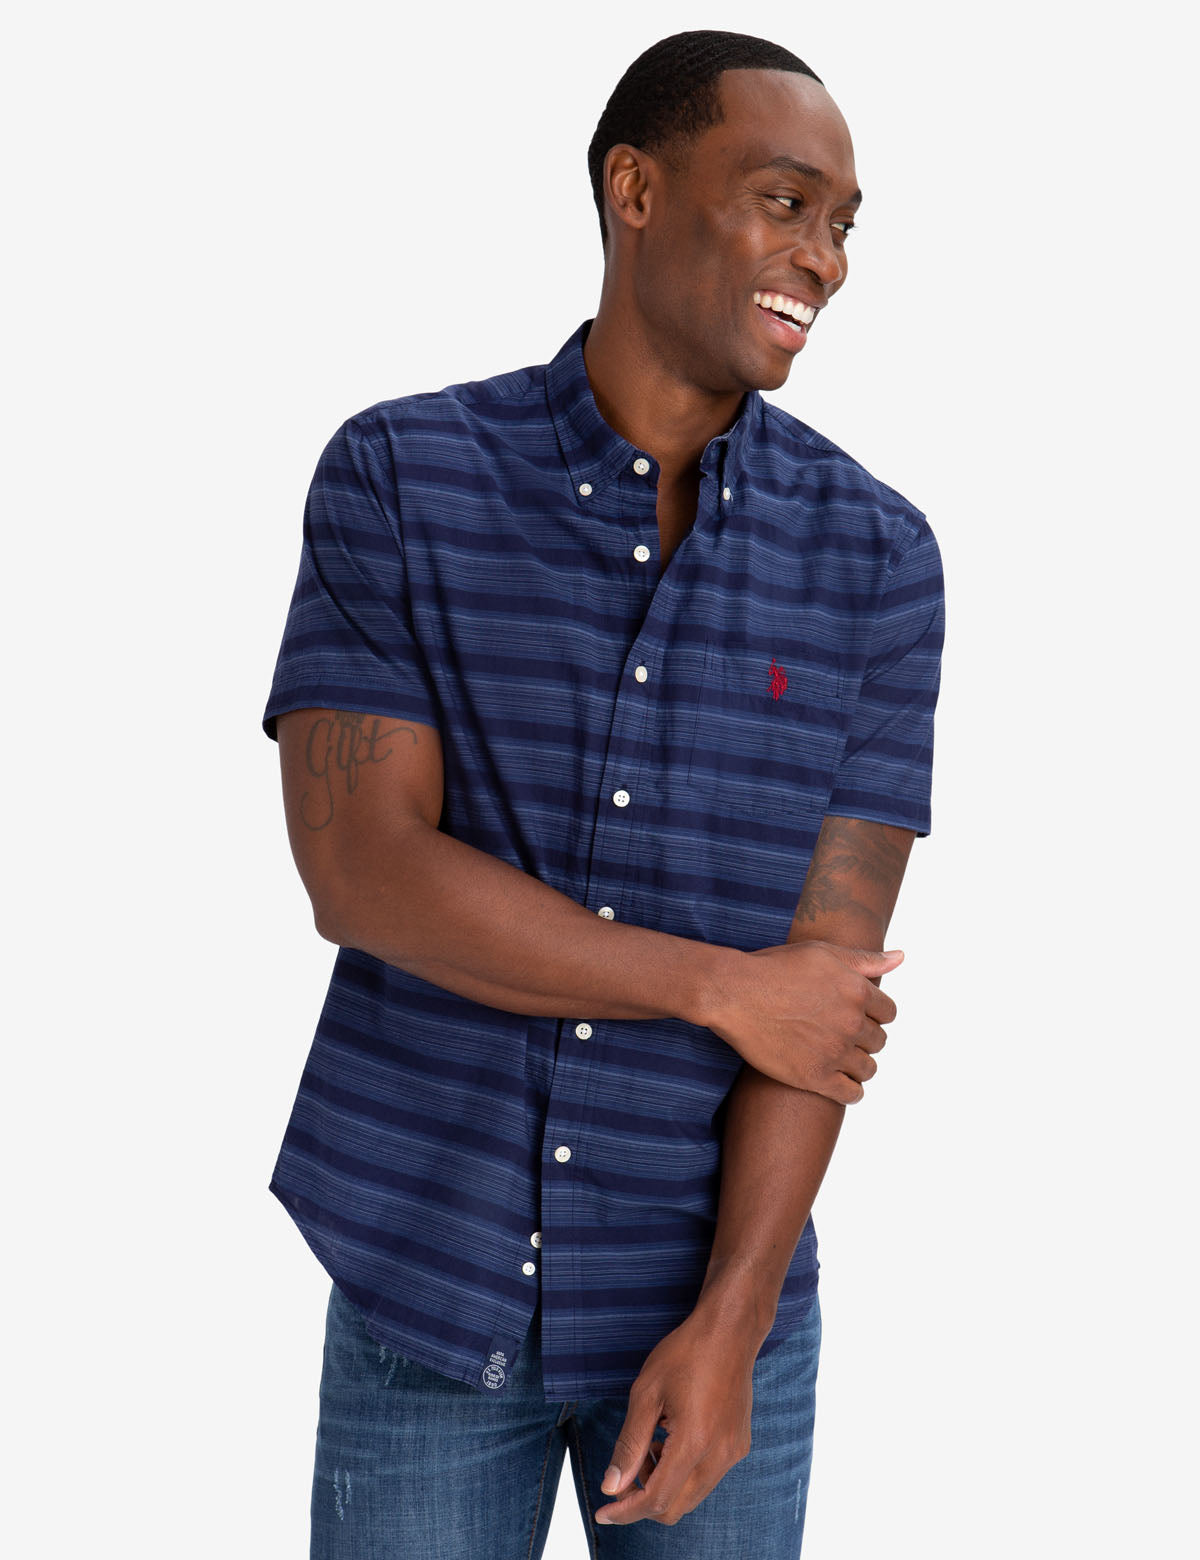 DOBBY STRIPED SHIRT - U.S. Polo Assn.